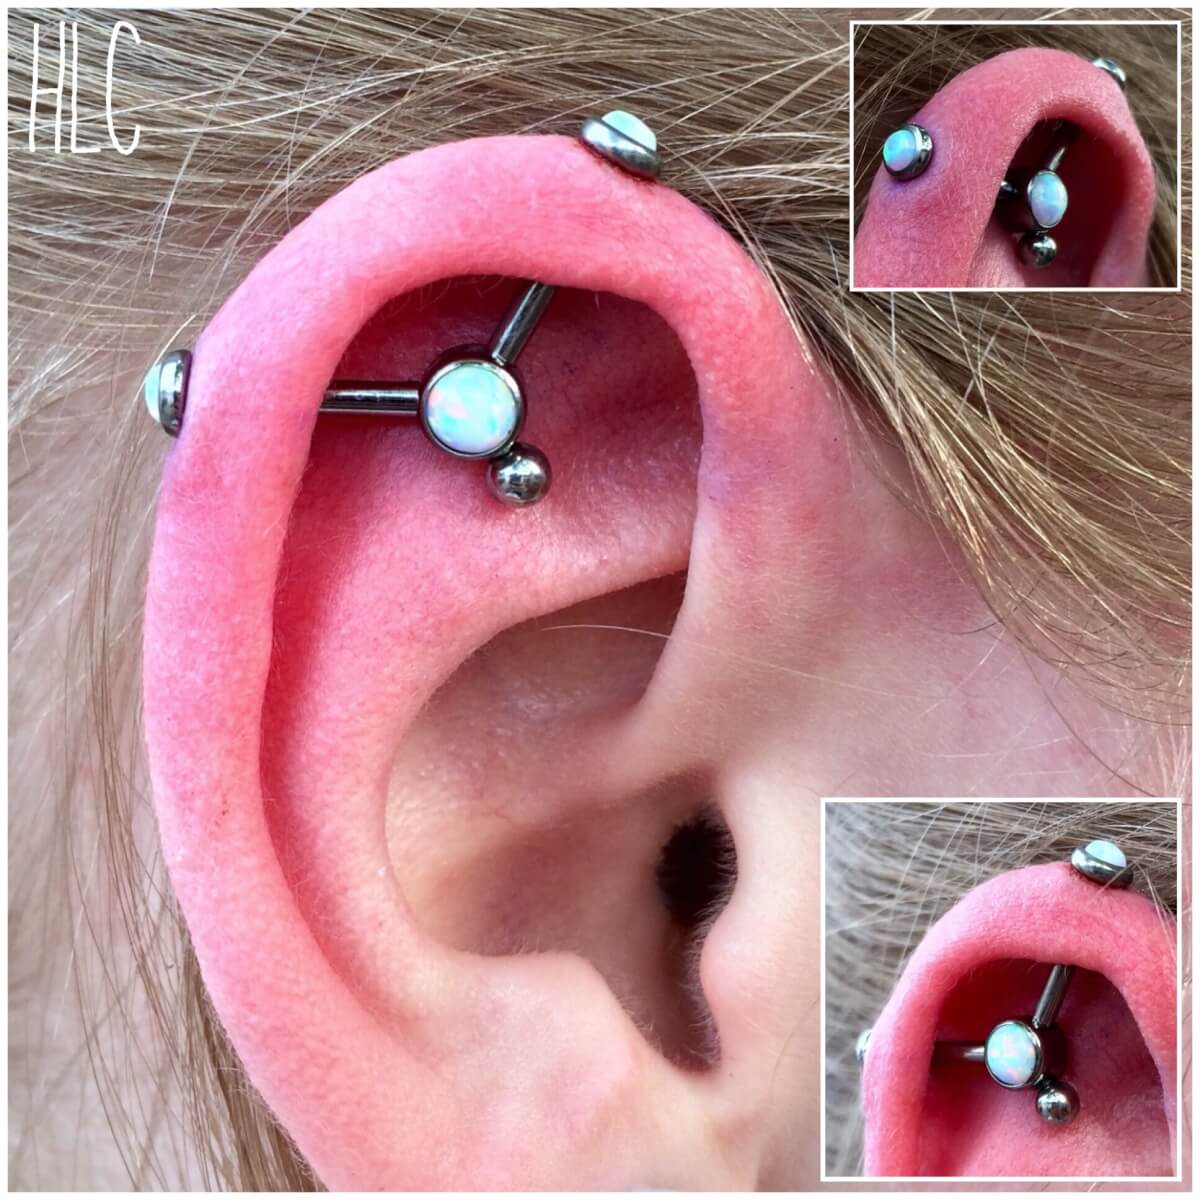 Industrial piercings at mantra tattoo best tattoo for Piercing salon